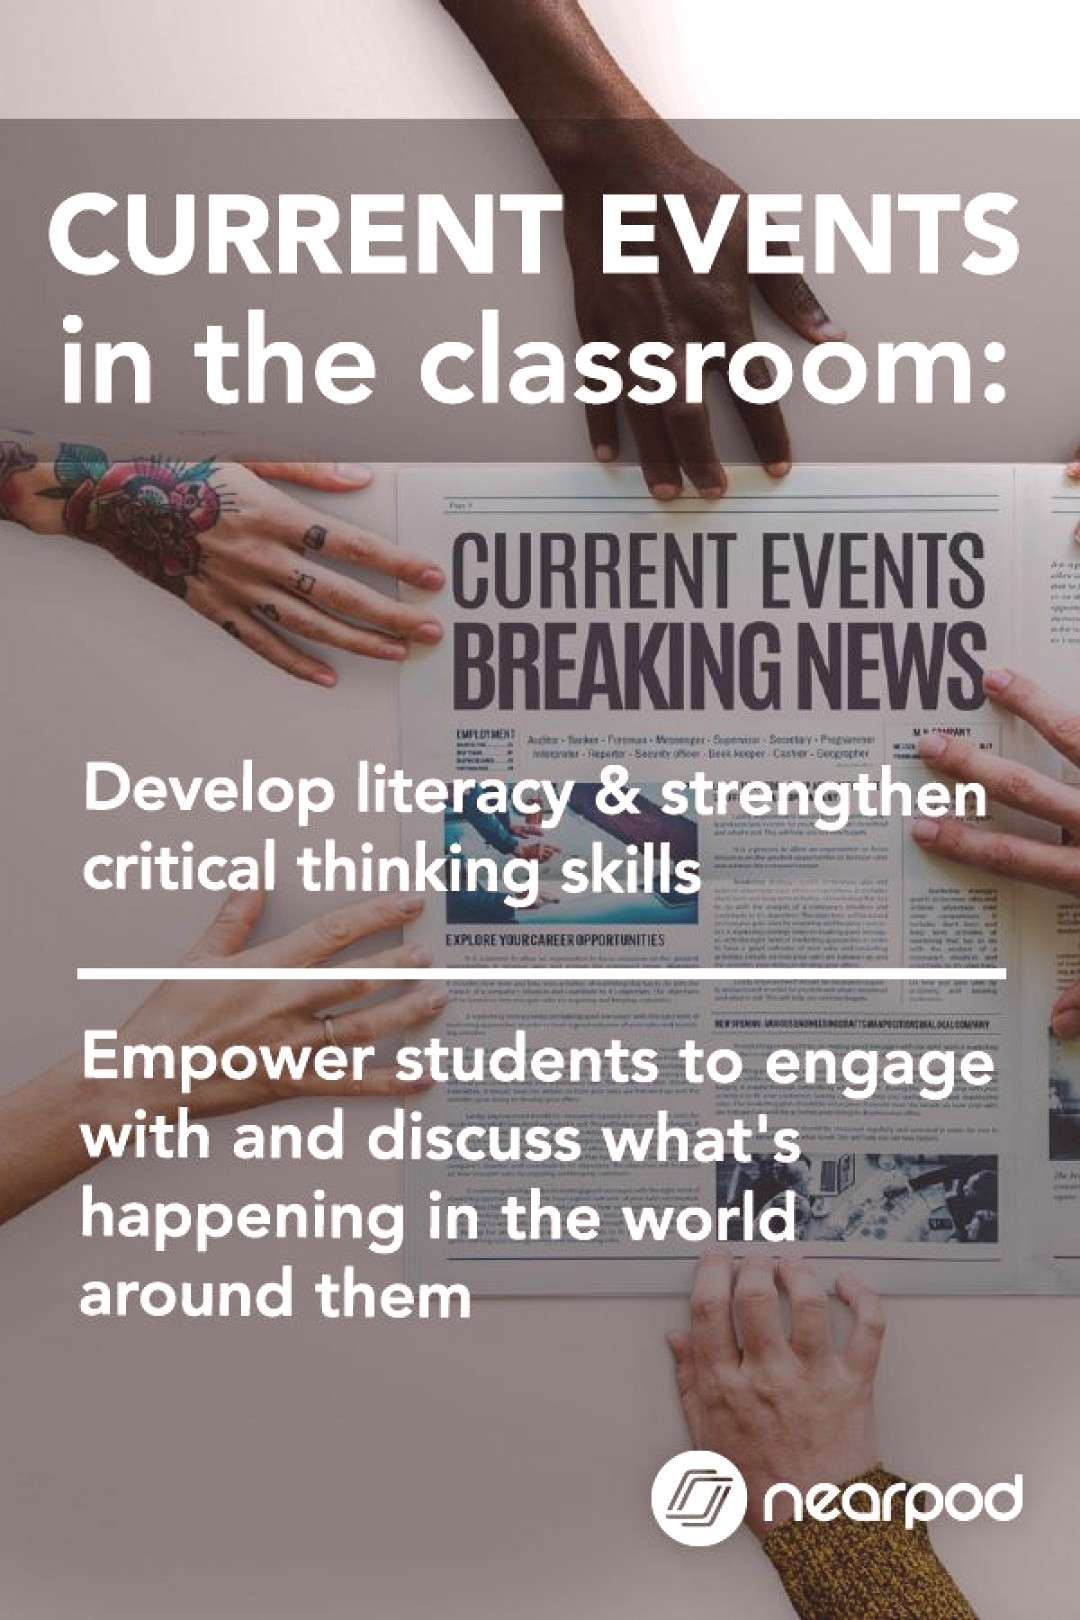 Current Events in the Classroom Do you teach current events in the classroom? Nearpod's FREE grow